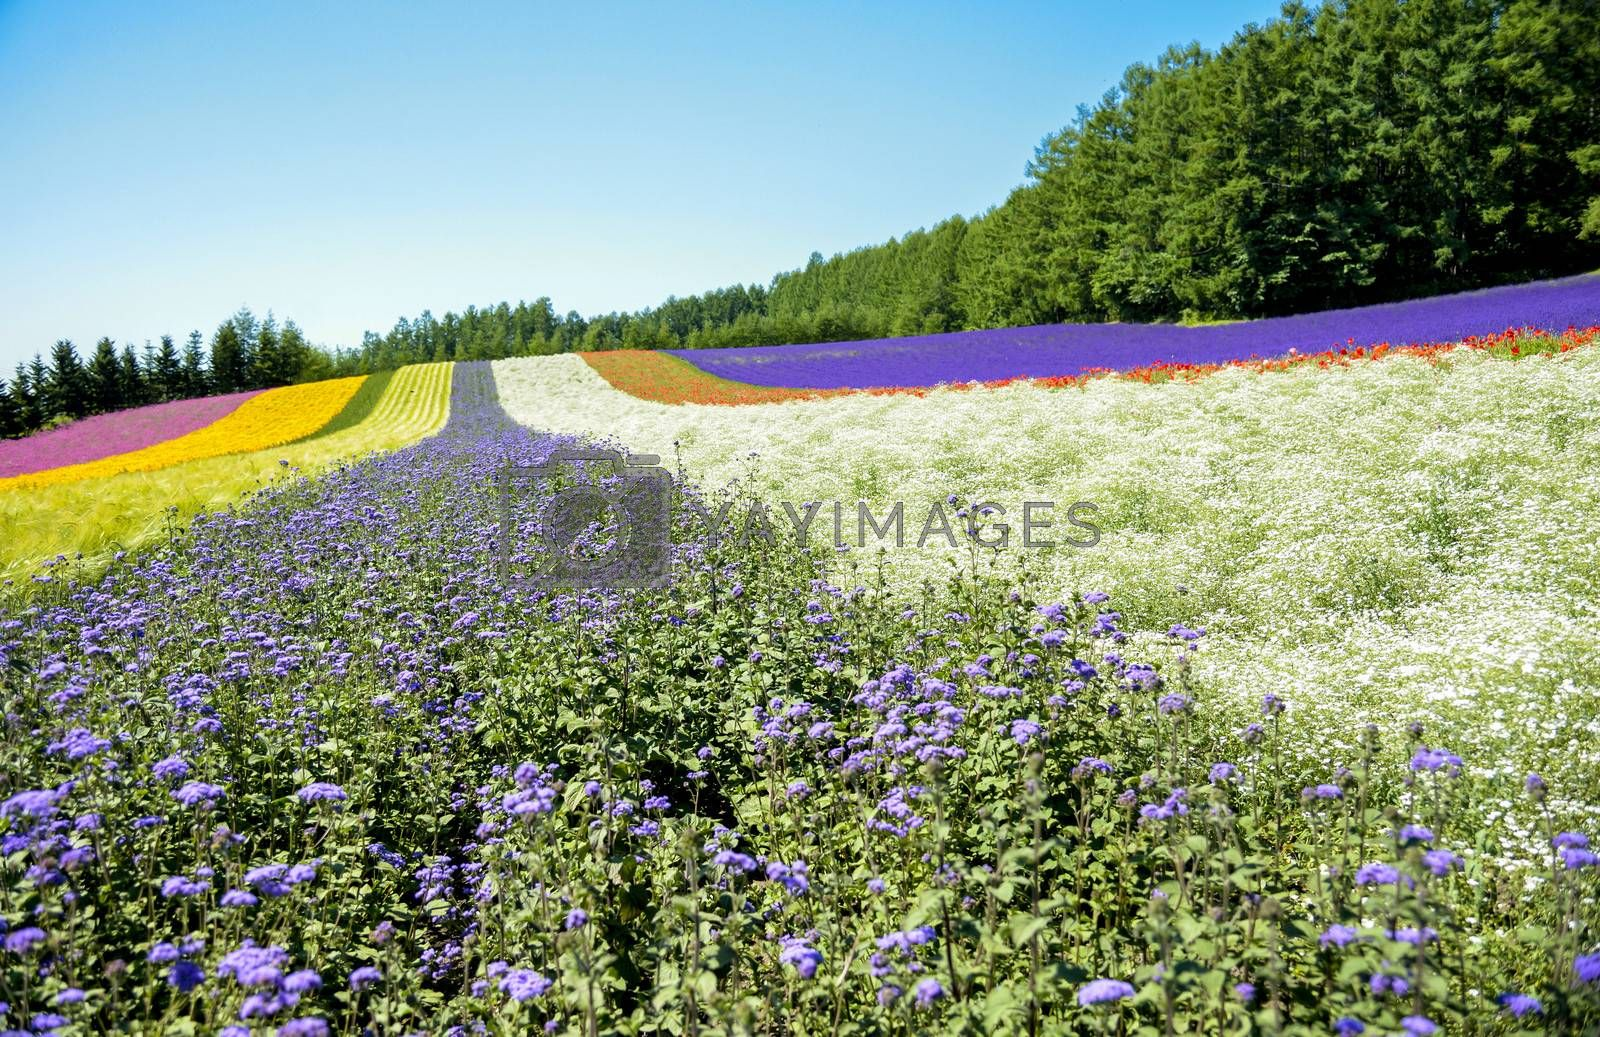 Colorful flower in the row with blue sky6